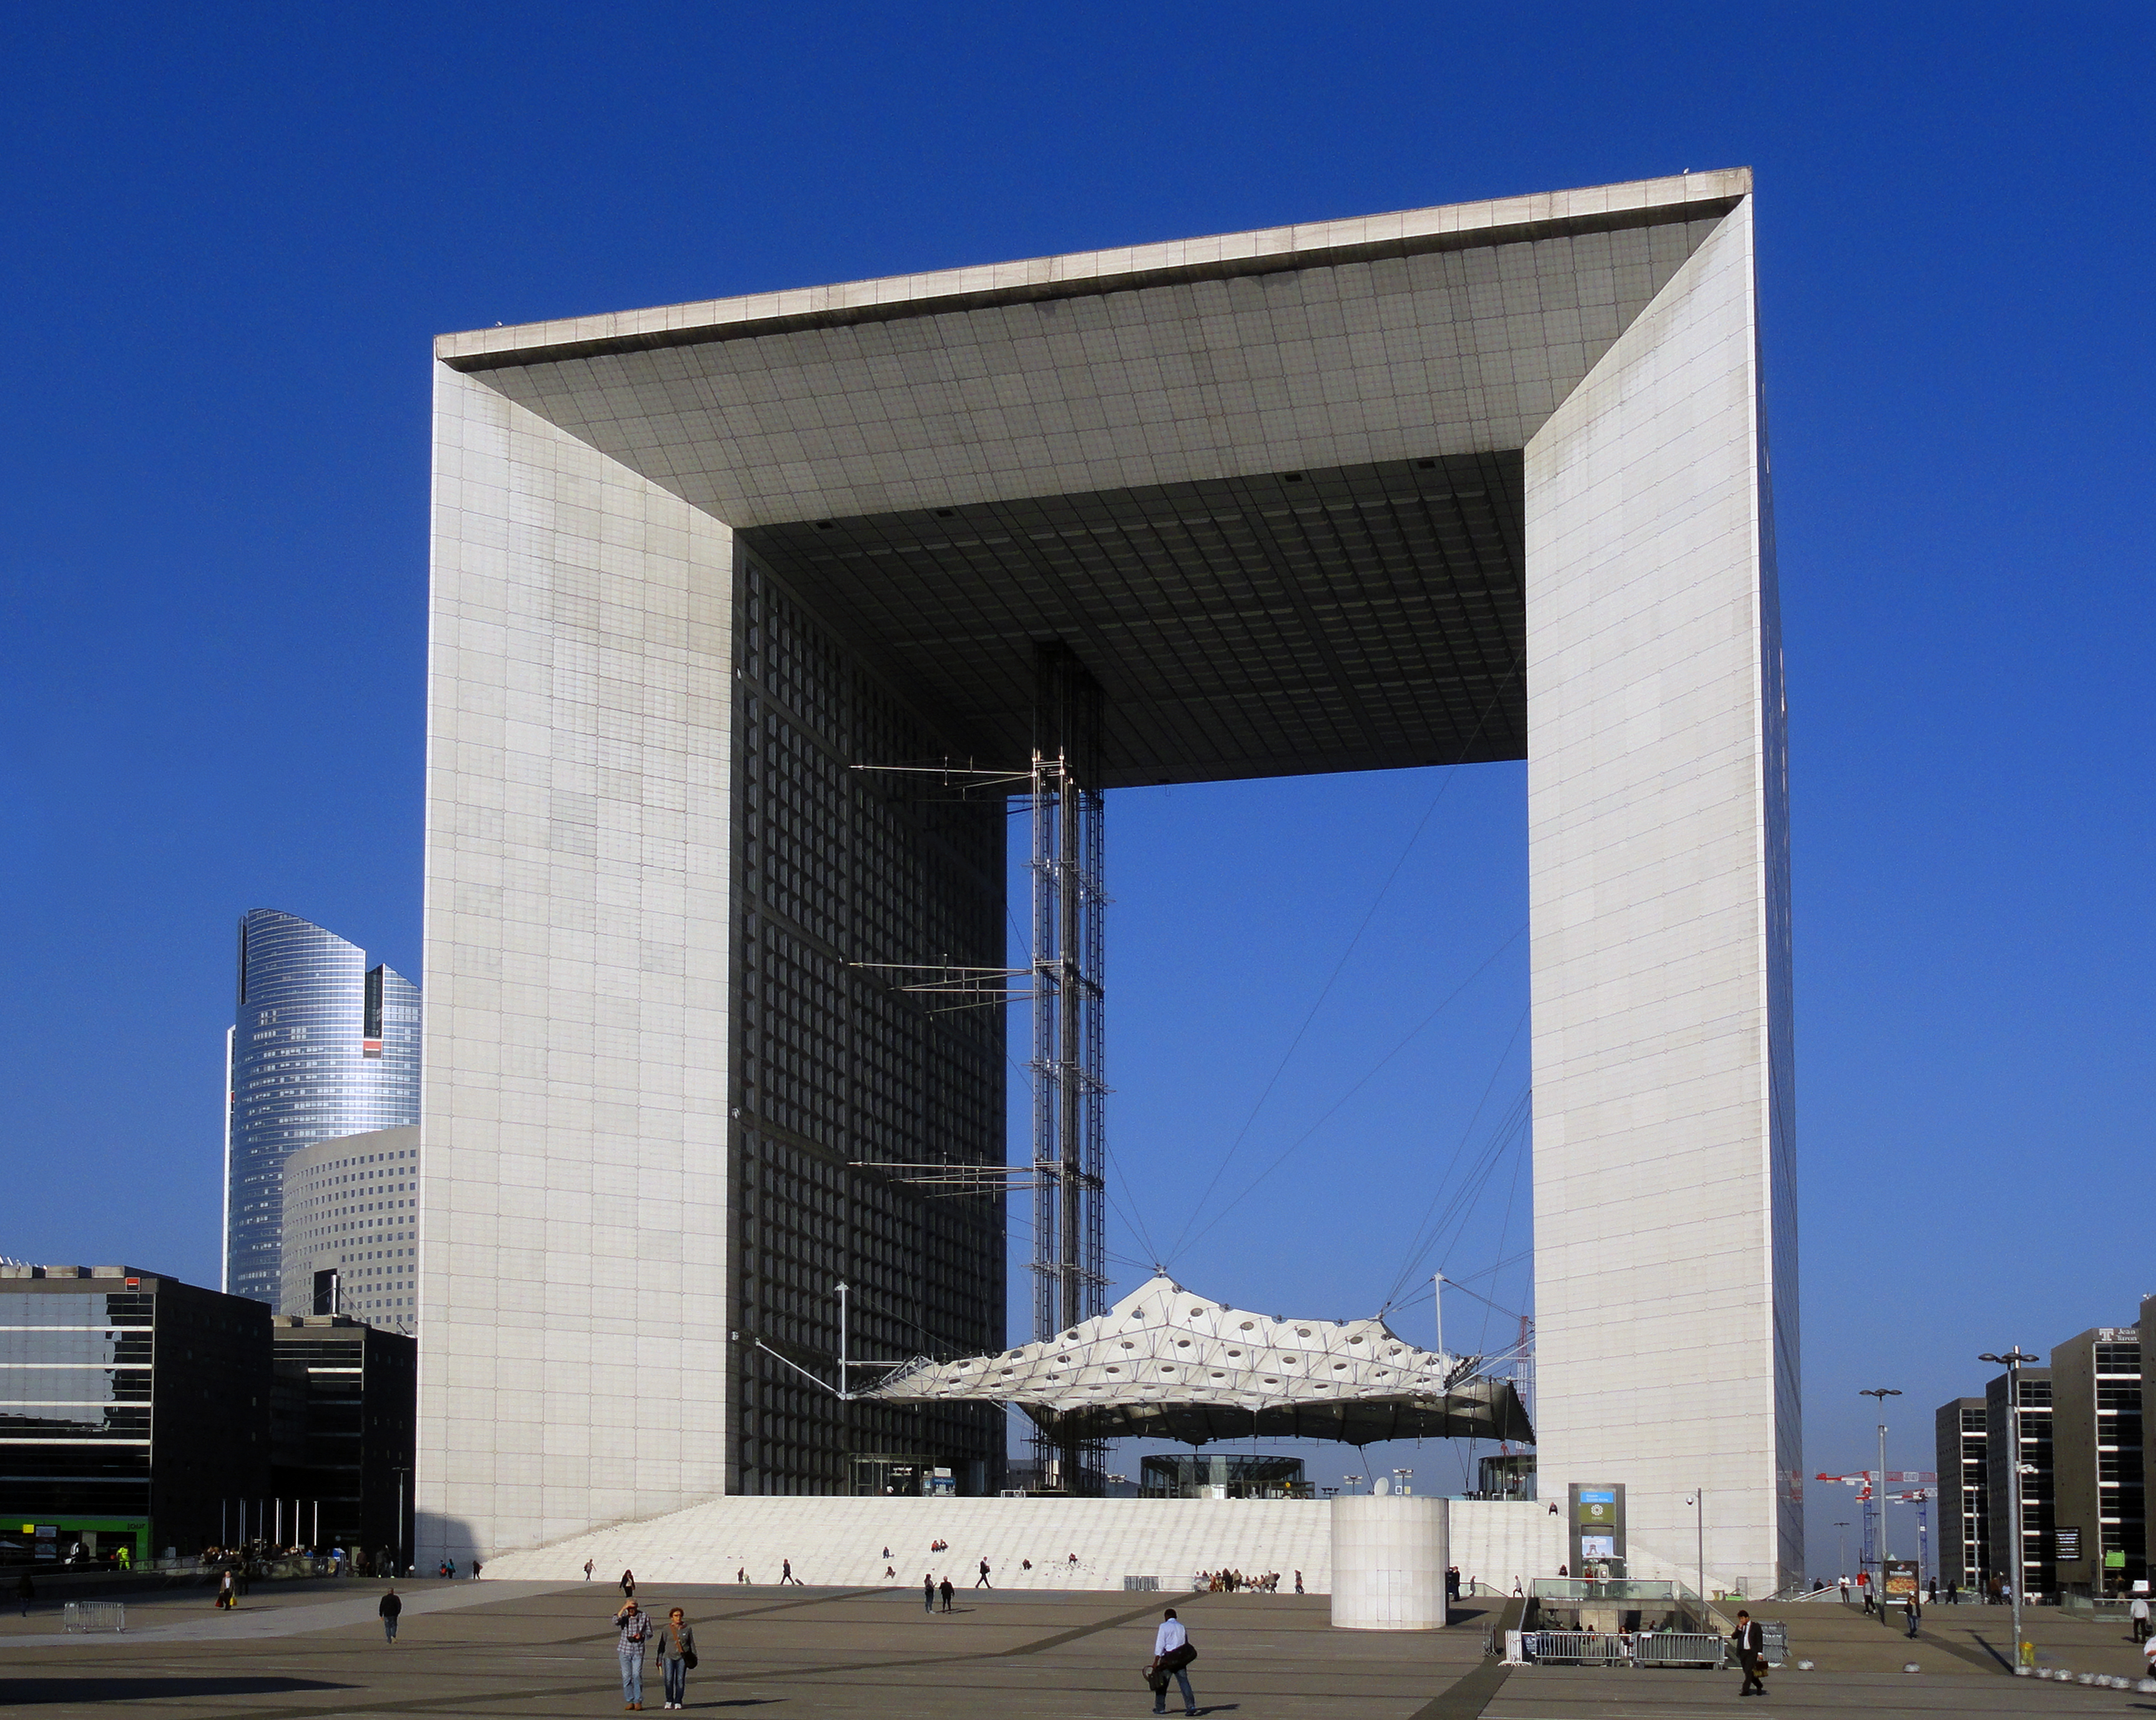 Grande Arche Backgrounds on Wallpapers Vista